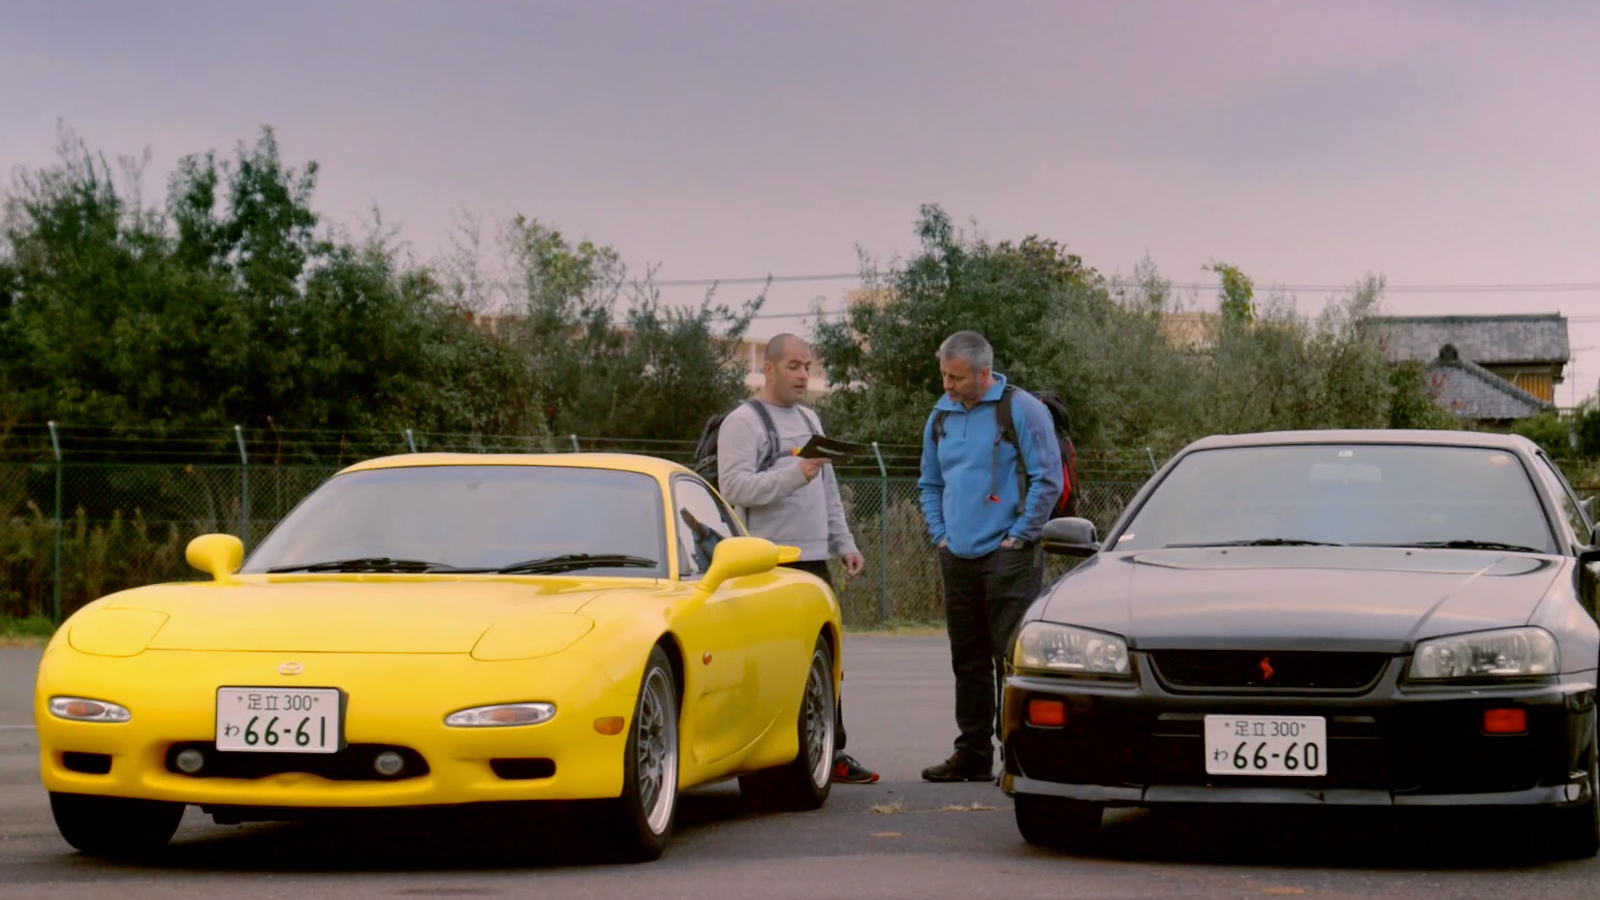 Top Gears Japan Episode Blew My Mind With 90s Sports Cars Name Of The Subaru In Born To Race